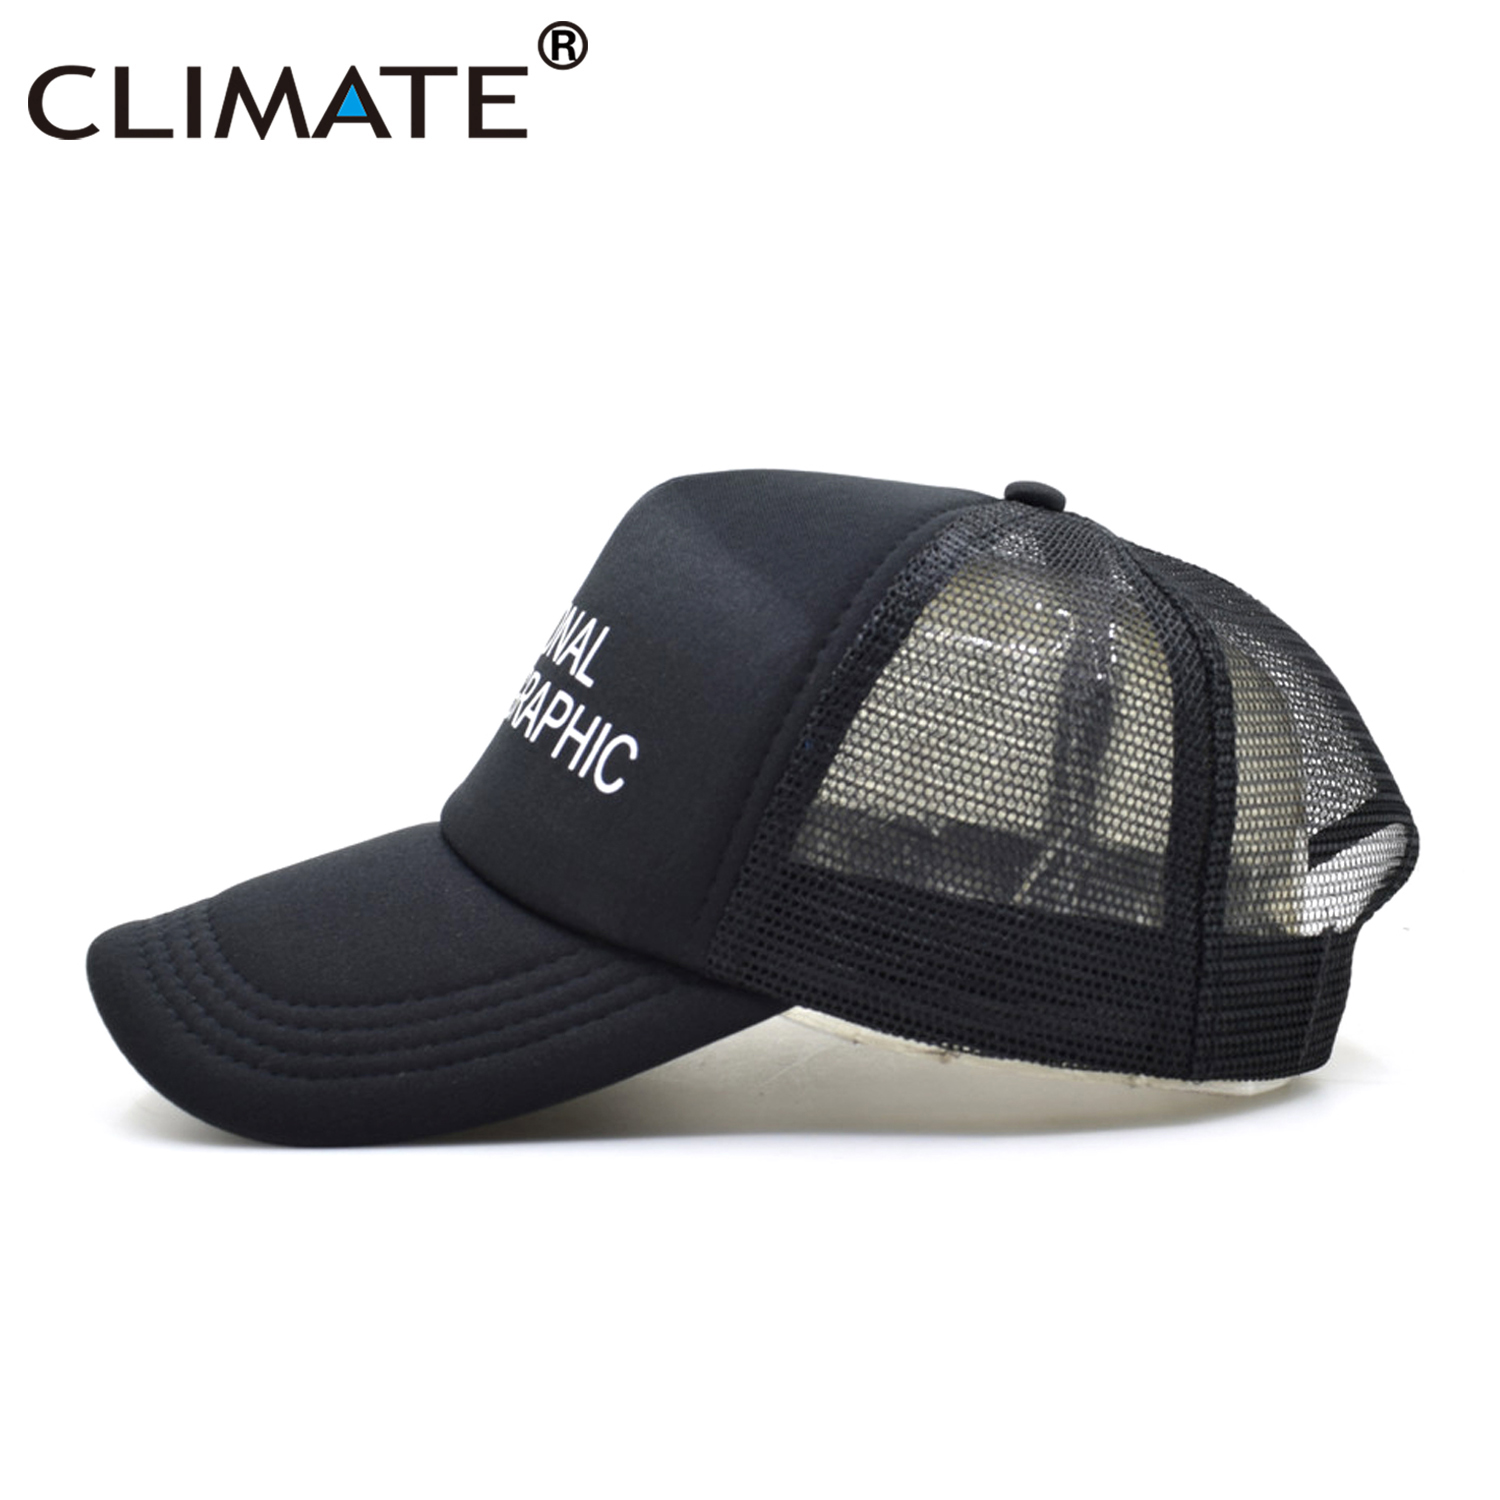 KLIMAAT Heren New Trucker Caps National Geographic Channel Hot Summer - Kledingaccessoires - Foto 5